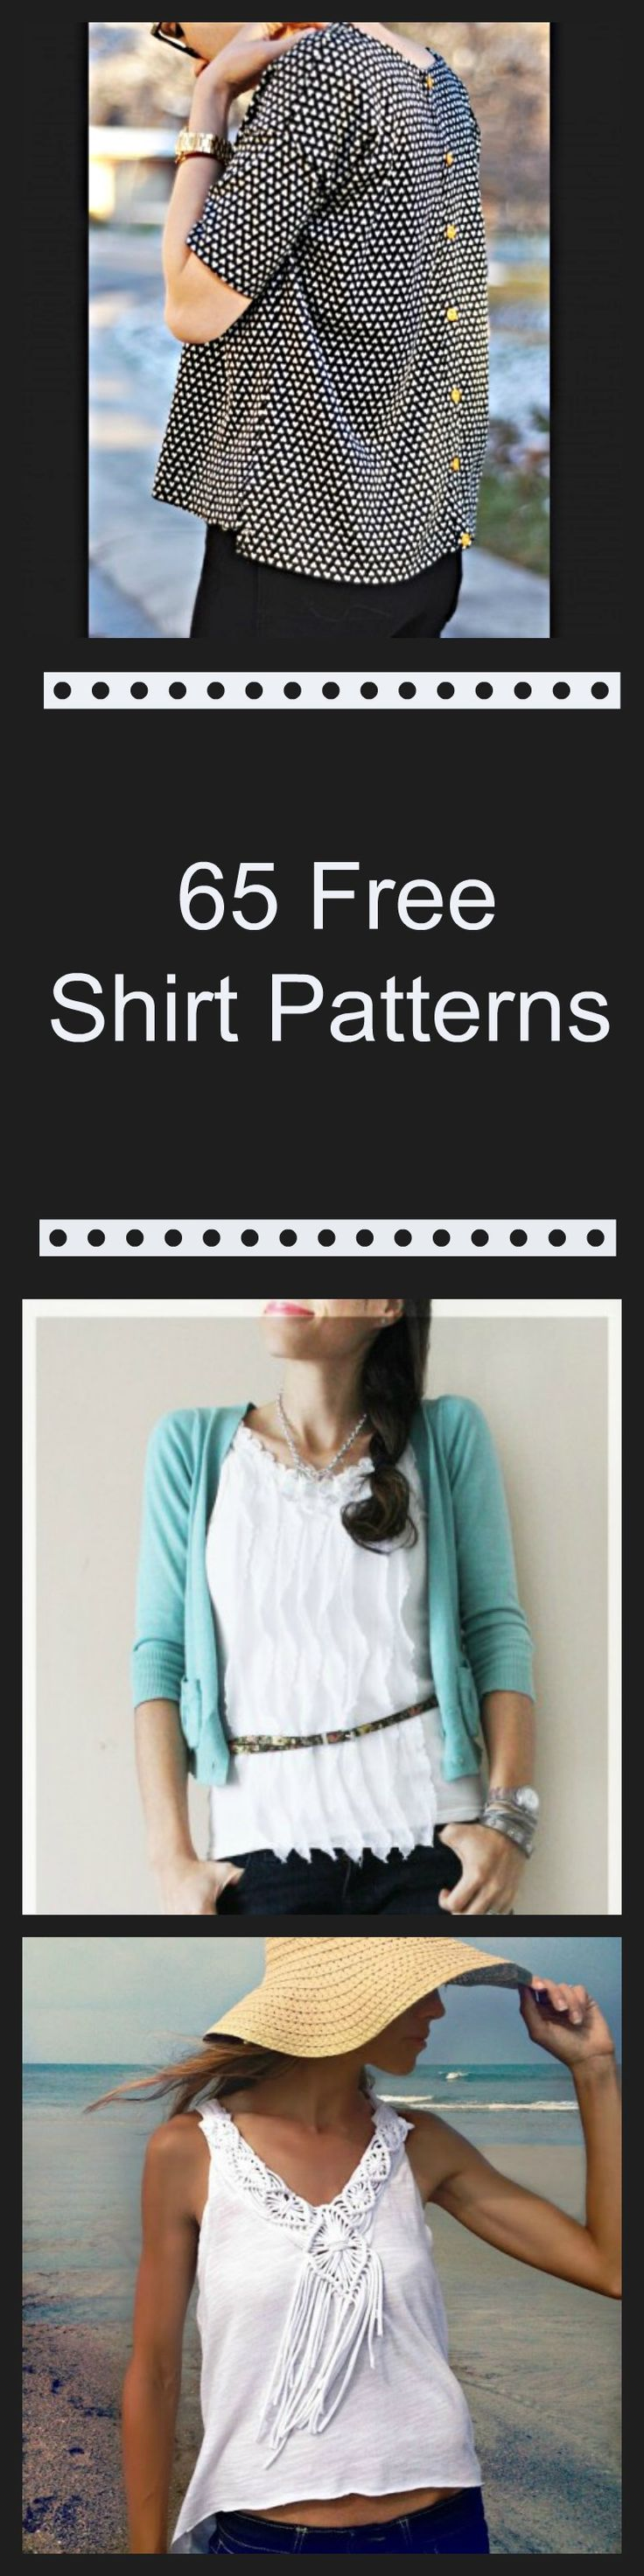 727 best sewing images on pinterest sewing projects sew and